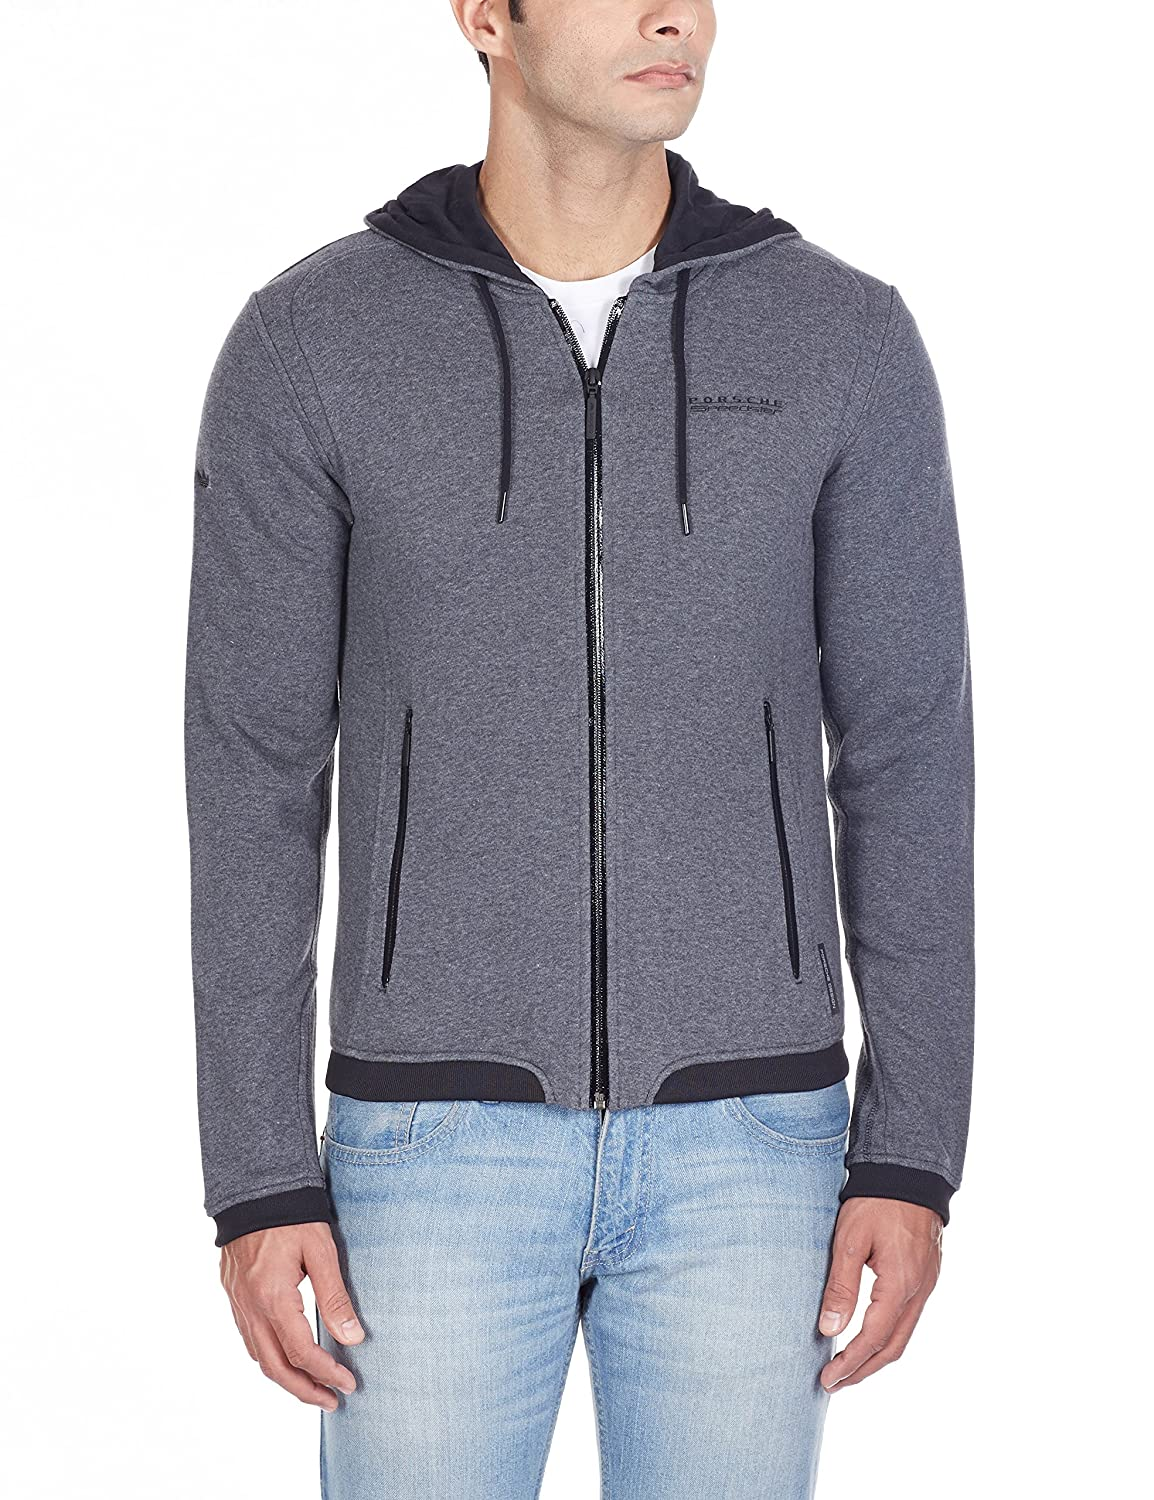 adidas Herren Sweatshirt FT TRACK TOP, M64788